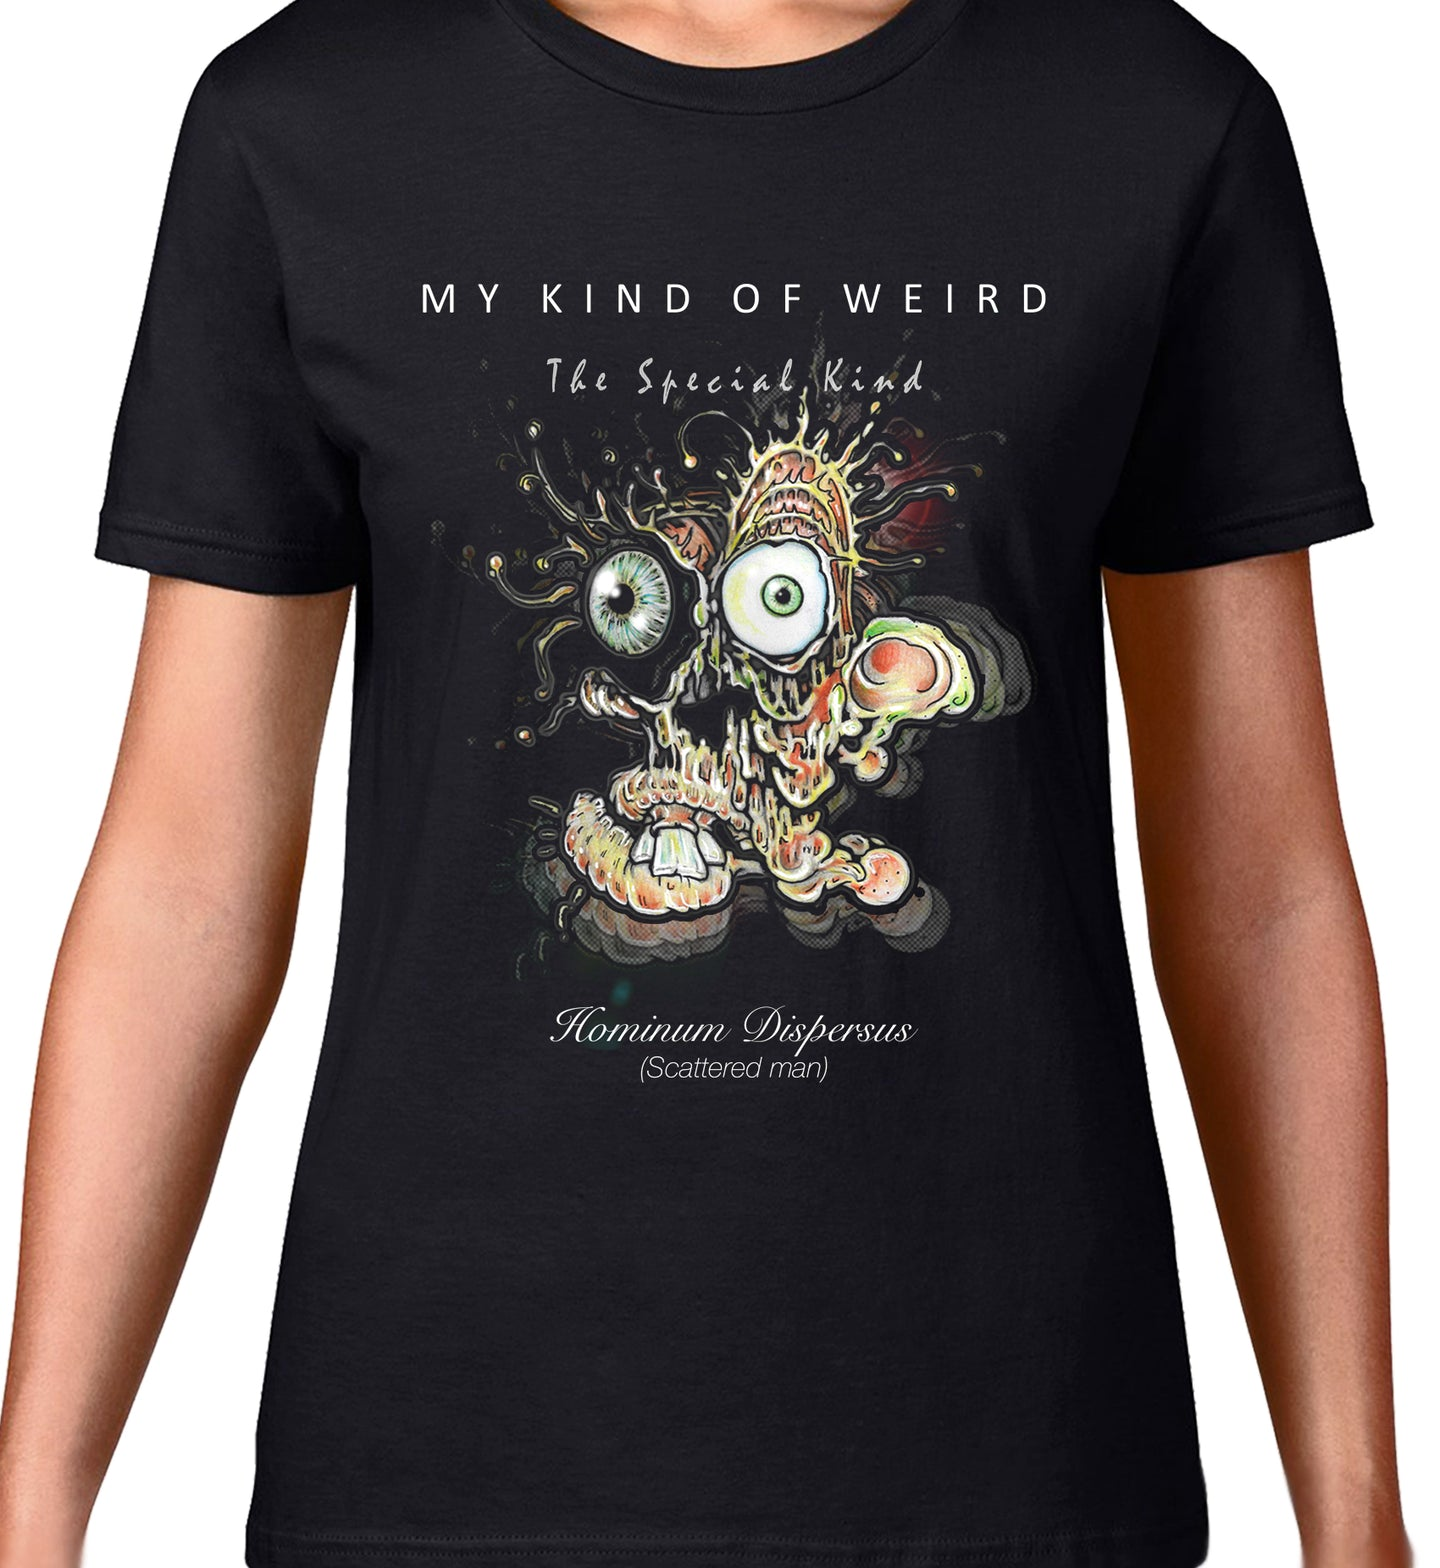 MY KIND OF WEIRD - SCATTERED MAN - WOMEN'S TEE